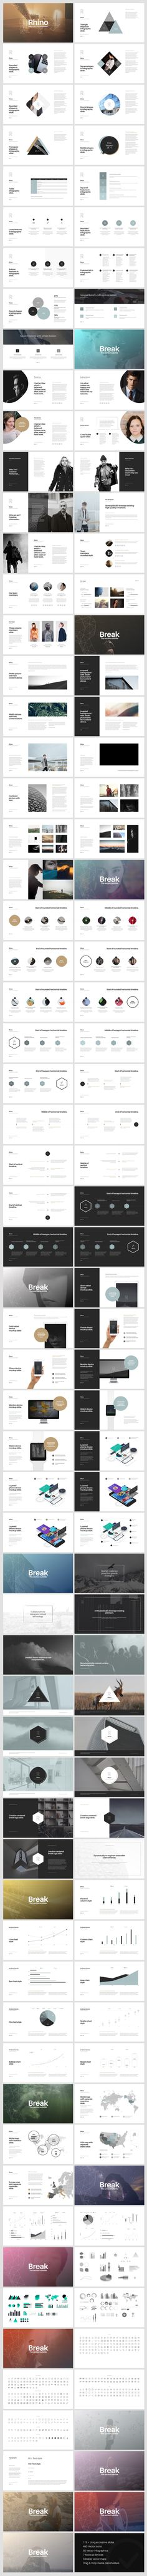 Rhino Keynote Presentation Template by GoaShape on Creative Market - Keynote - Ideas of Keynote - Rhino Keynote Presentation Template by GoaShape on Creative Market Graphisches Design, Slide Design, Book Design, Layout Design, Keynote Design, Design Presentation, Presentation Templates, Presentation Slides, Template Power Point